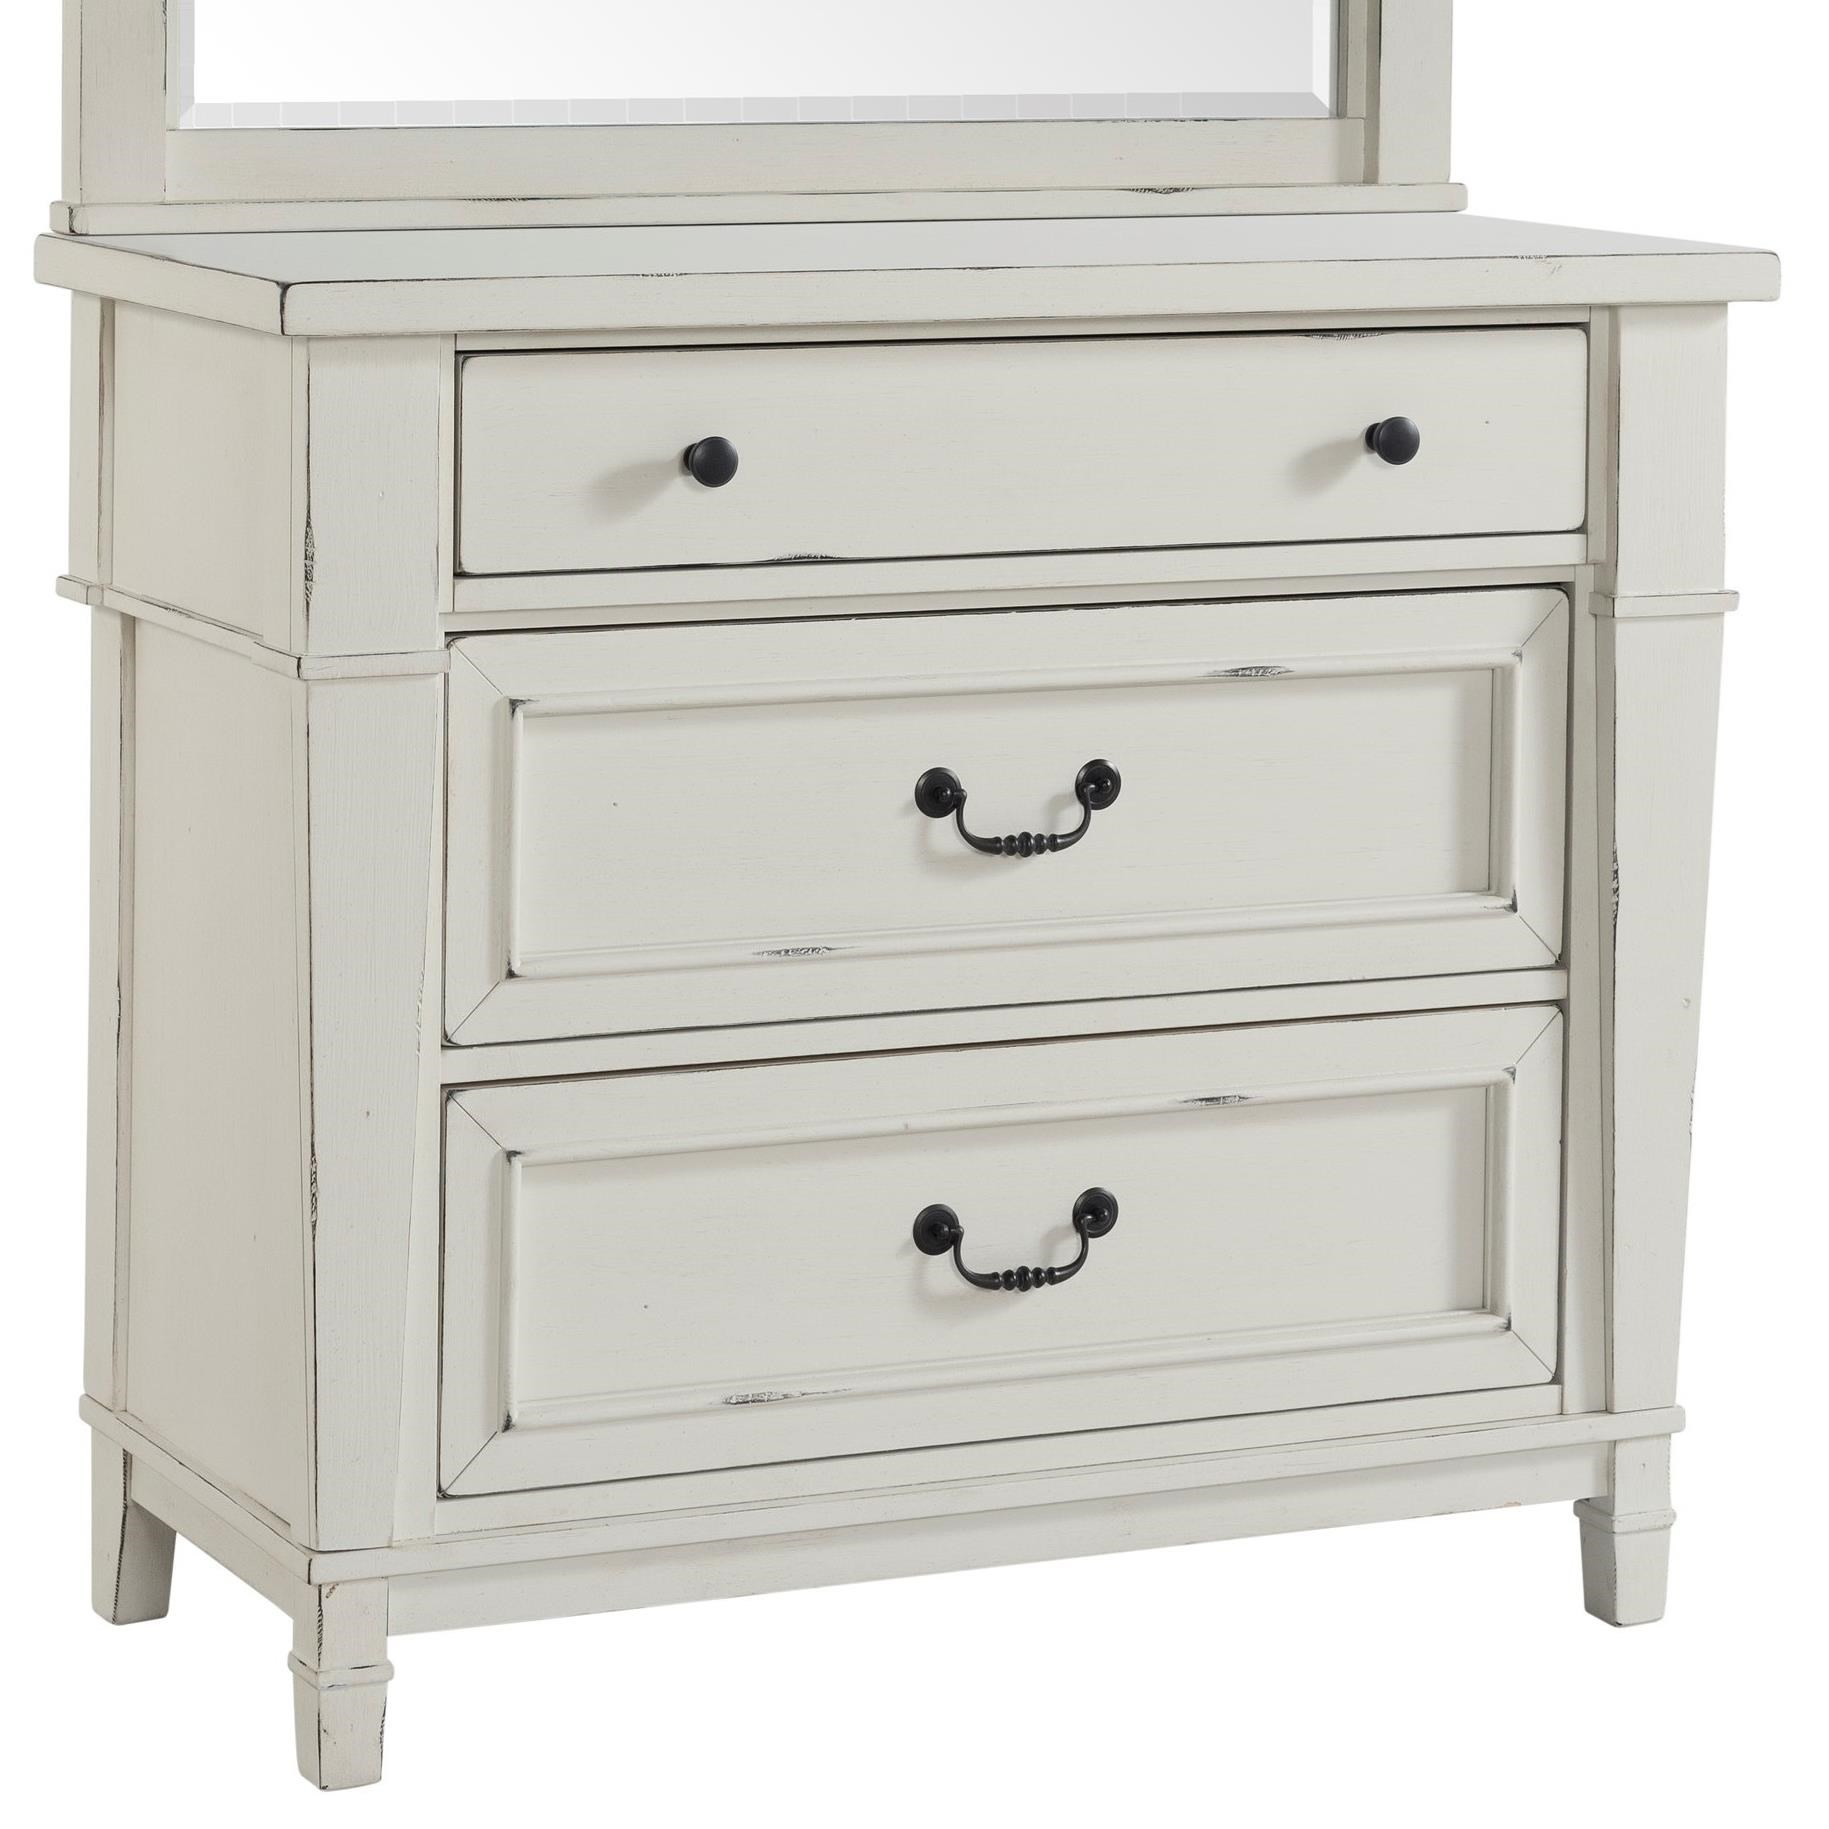 Astoria Small Chest at Walker's Furniture